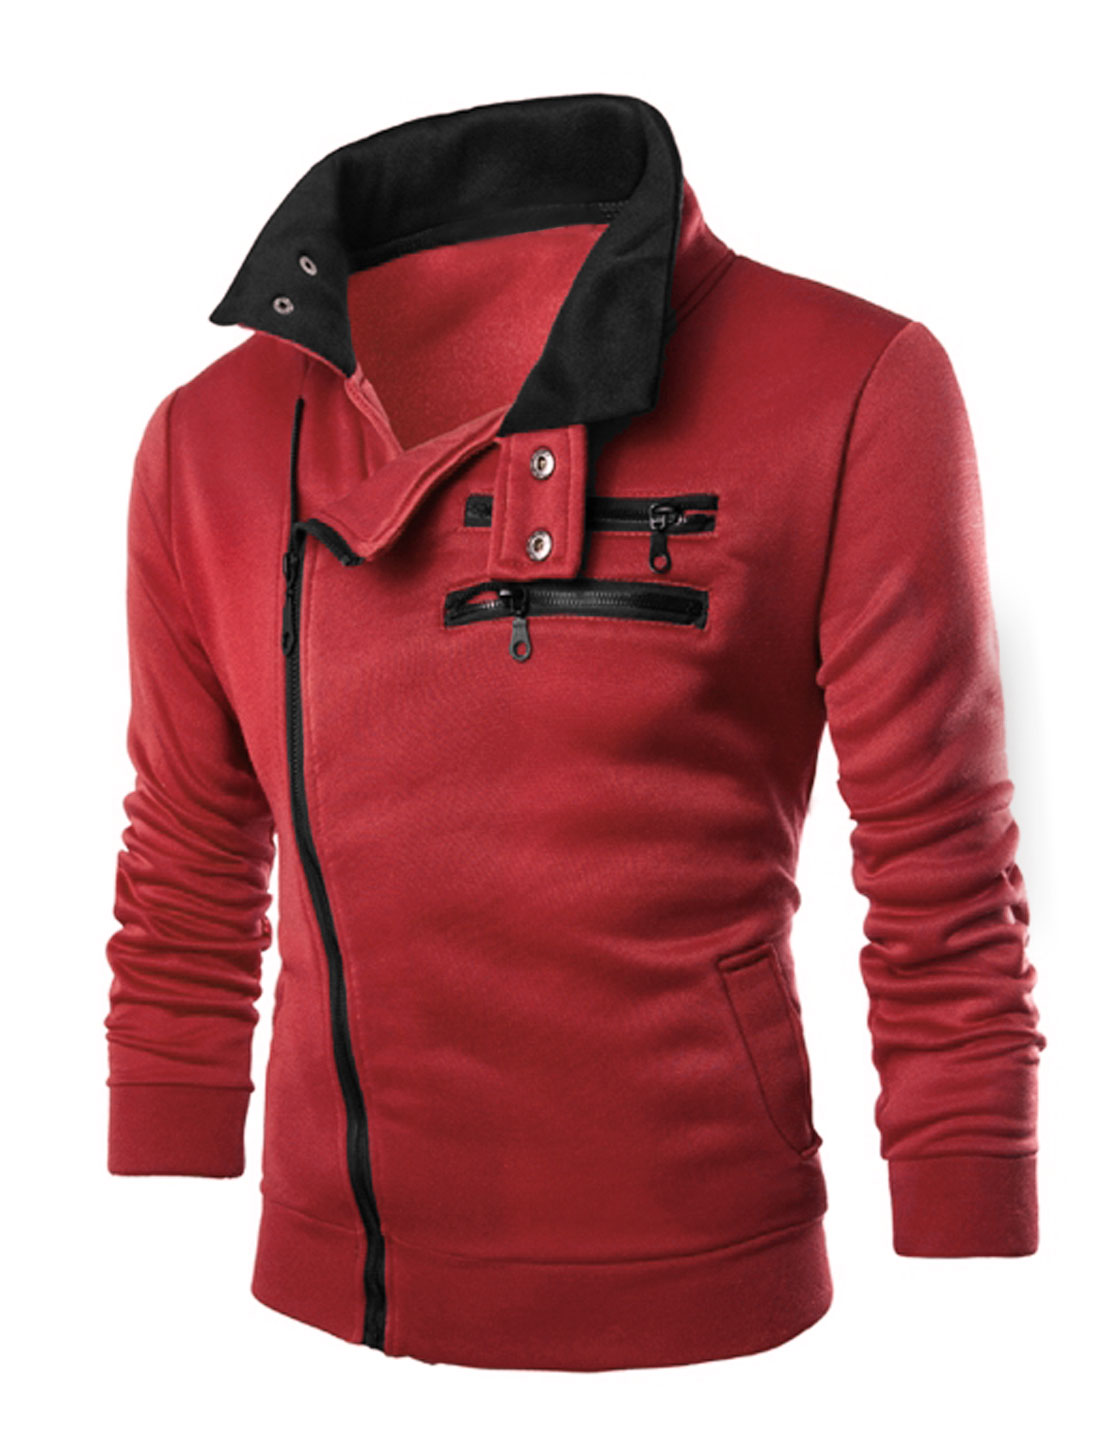 Men Inclined Zipper Front Pockets Slim Fit Casual Jacket Burgundy M